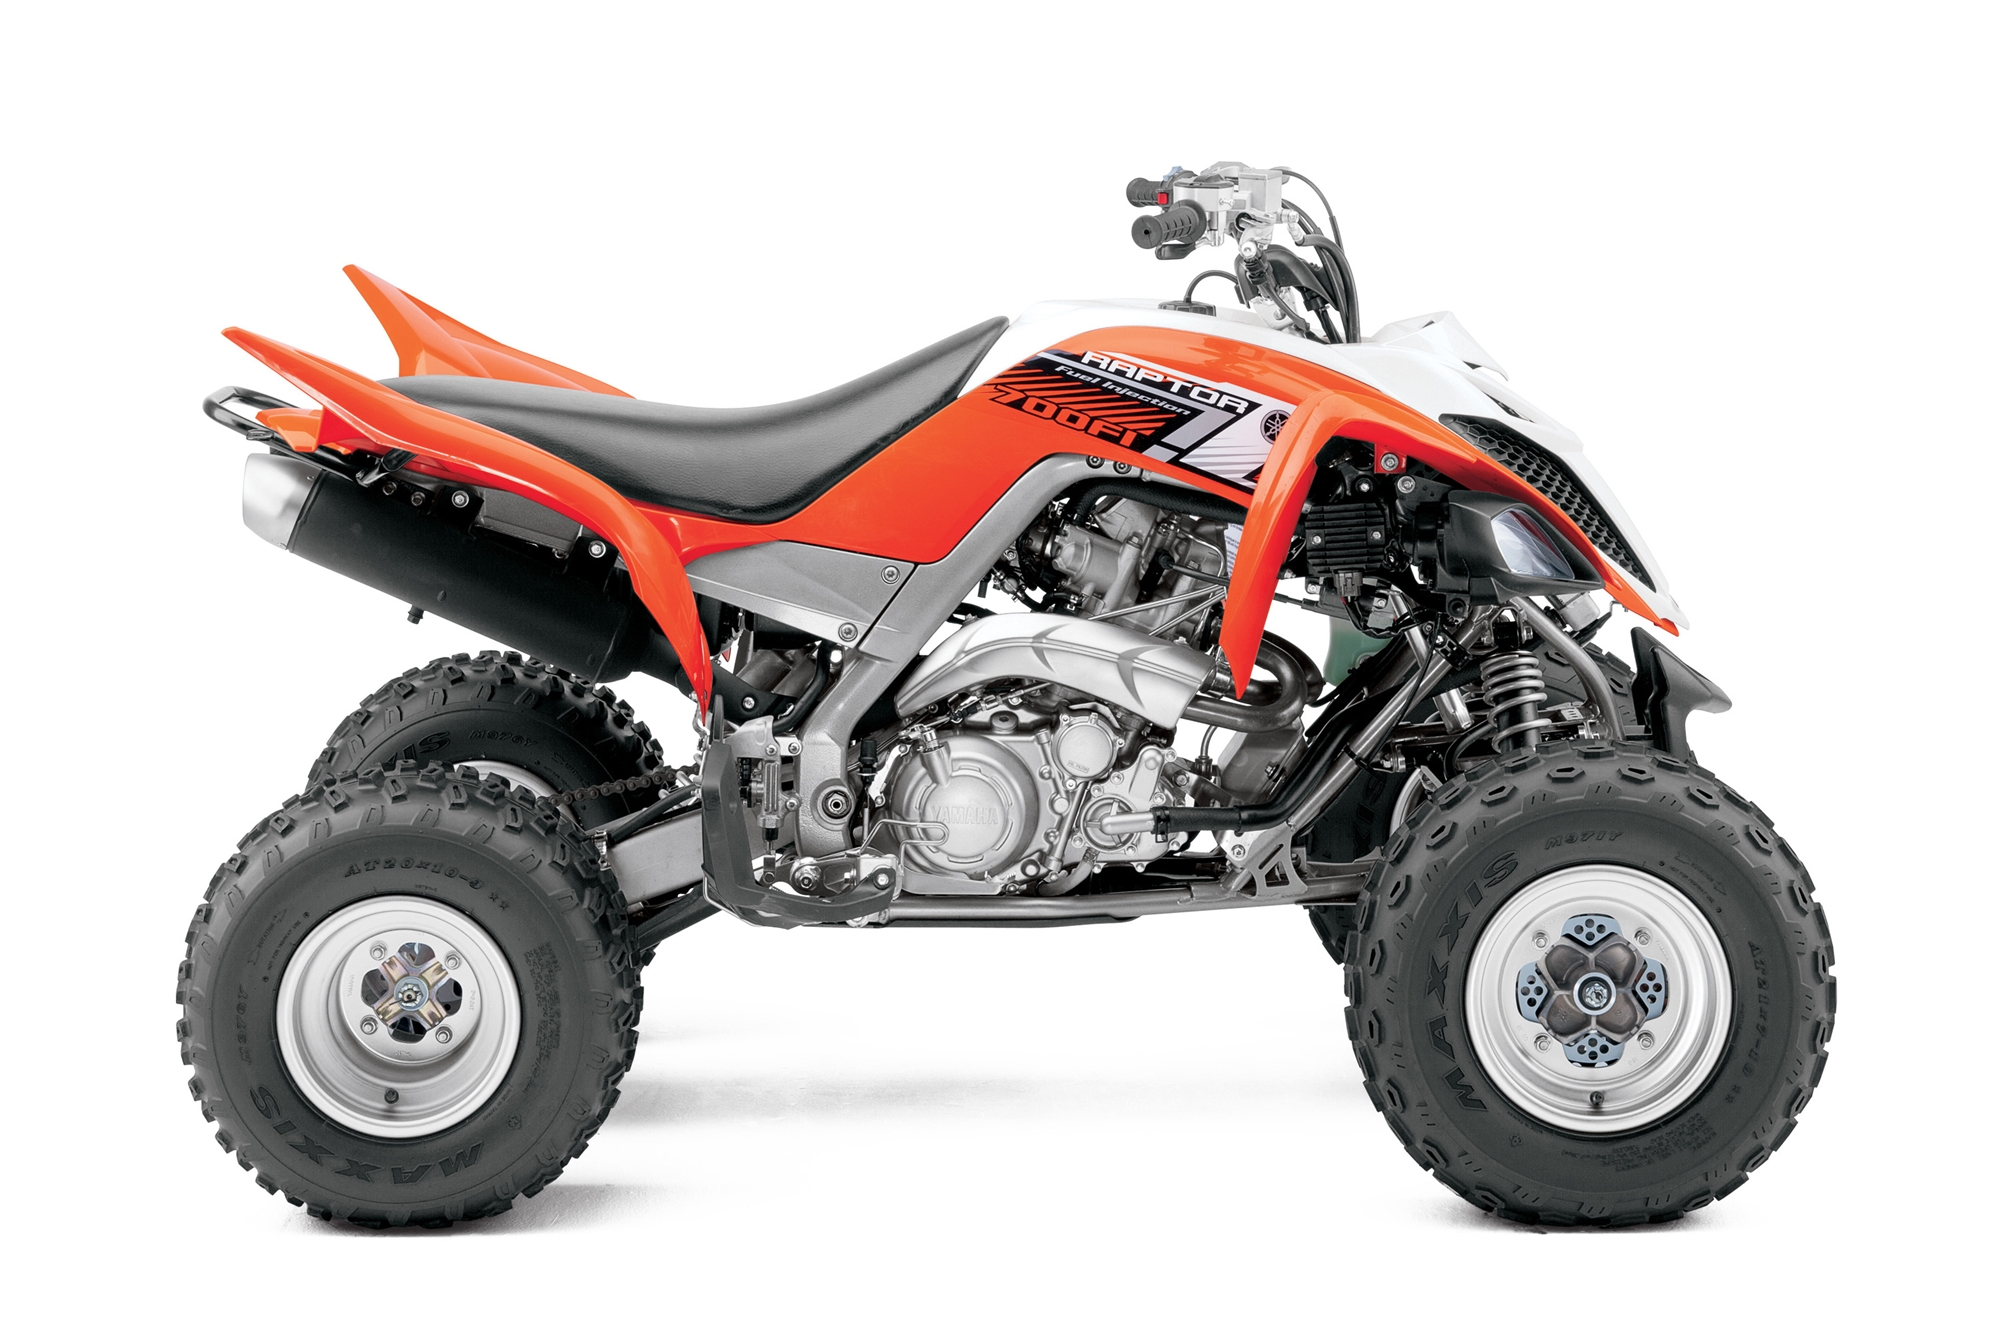 yamaha raptor 700 specs 2013 2014 autoevolution. Black Bedroom Furniture Sets. Home Design Ideas